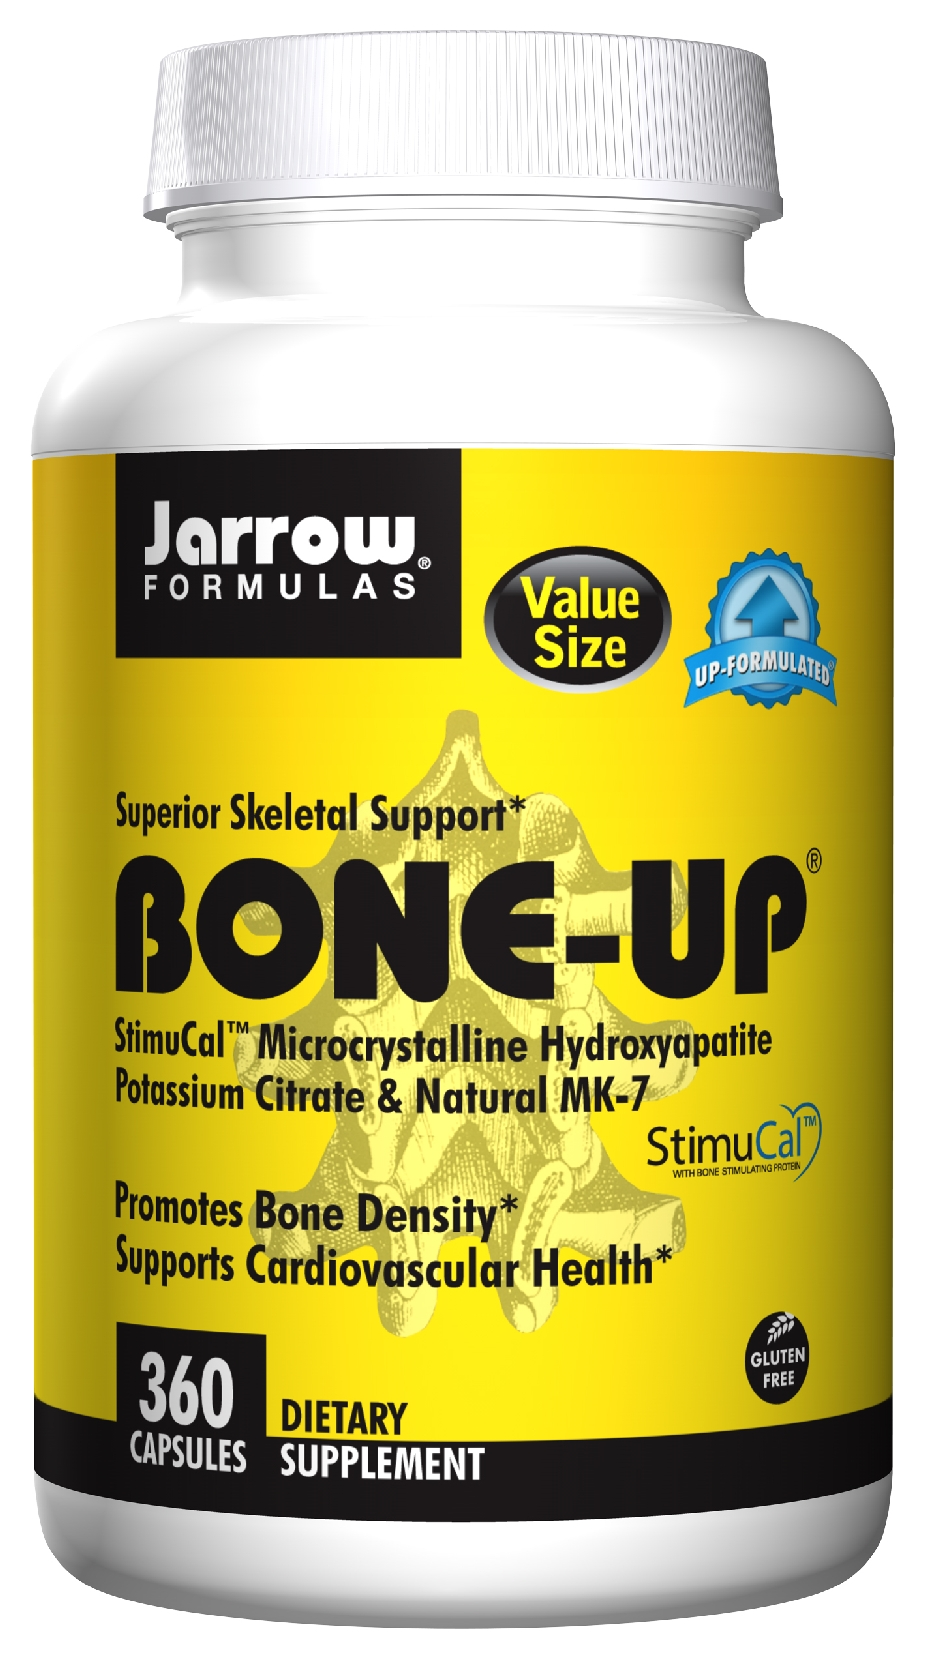 Bone-Up 360 caps by Jarrow Formulas